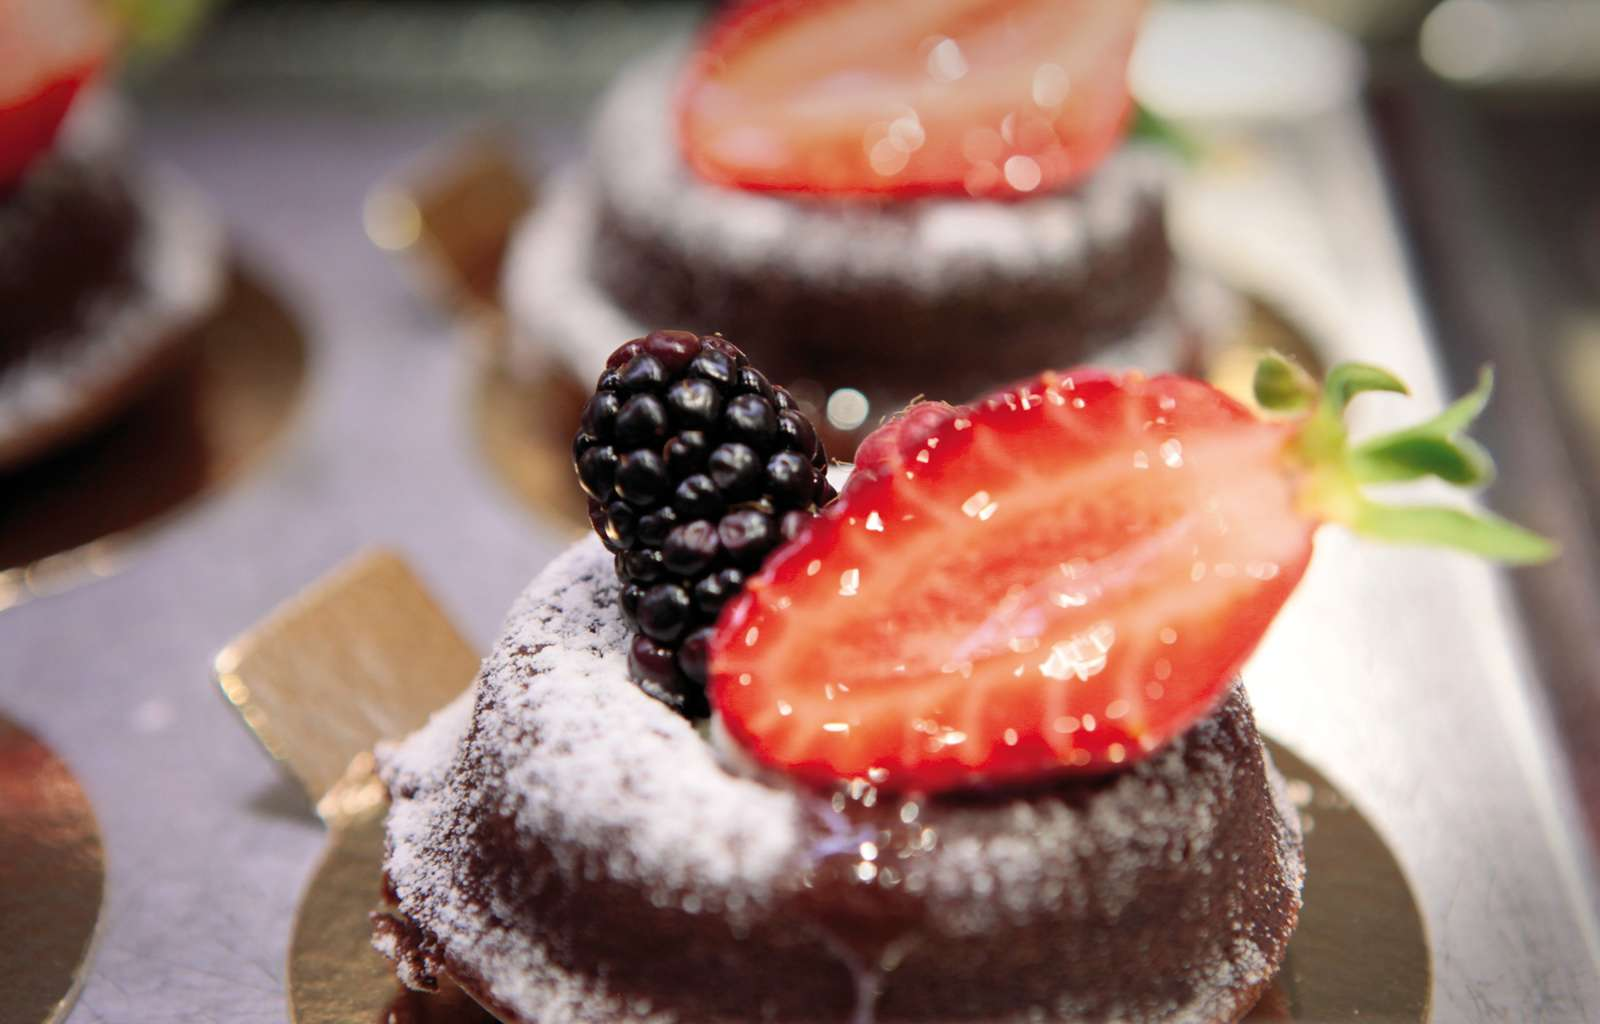 chocolate desert with berries